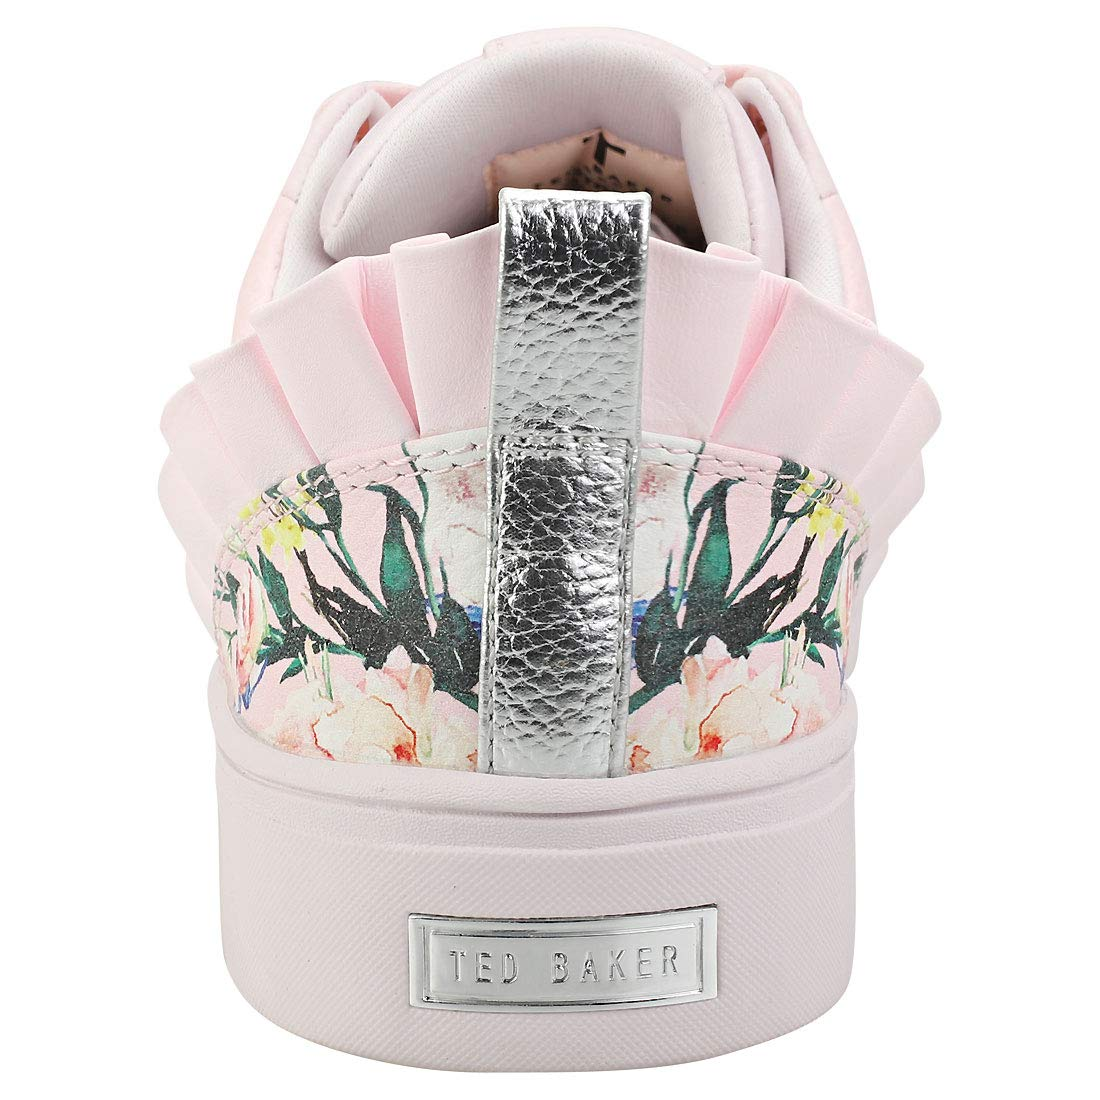 dffdae70fdd35 Ted Baker Astrna Womens Fashion Trainers: Amazon.co.uk: Shoes & Bags